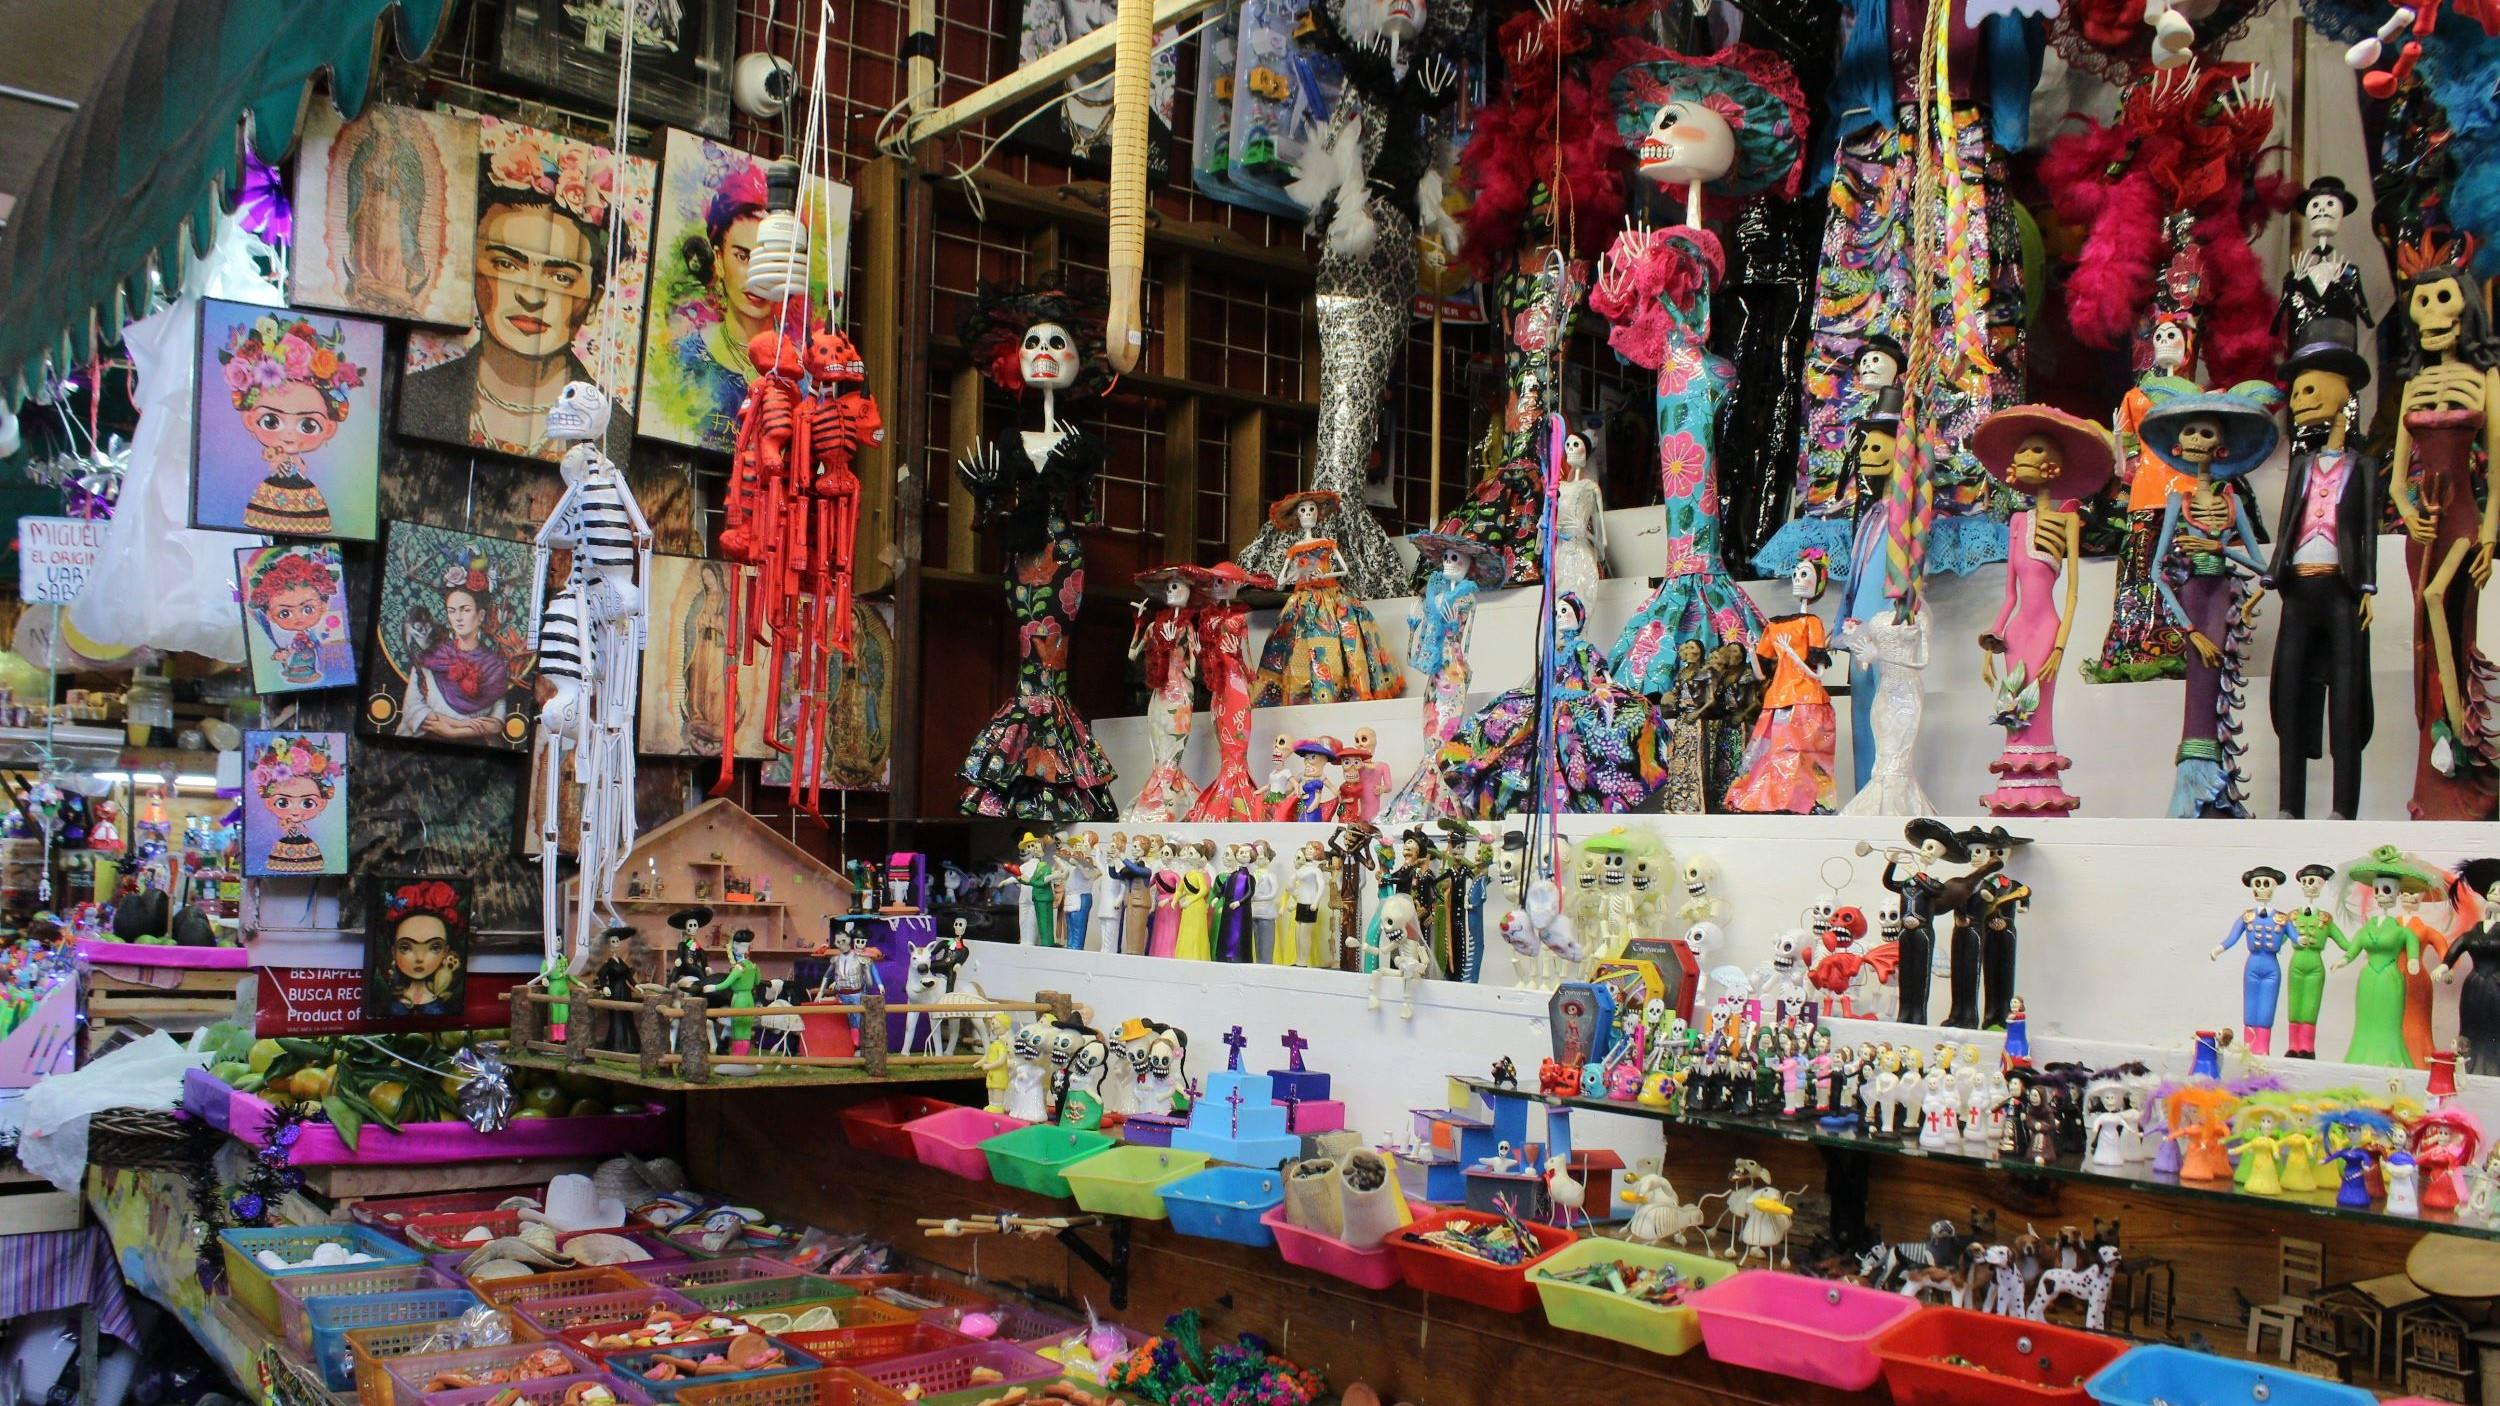 Free-History-&-Food-Tour-of-Coyoacan,-Mexico-City-14